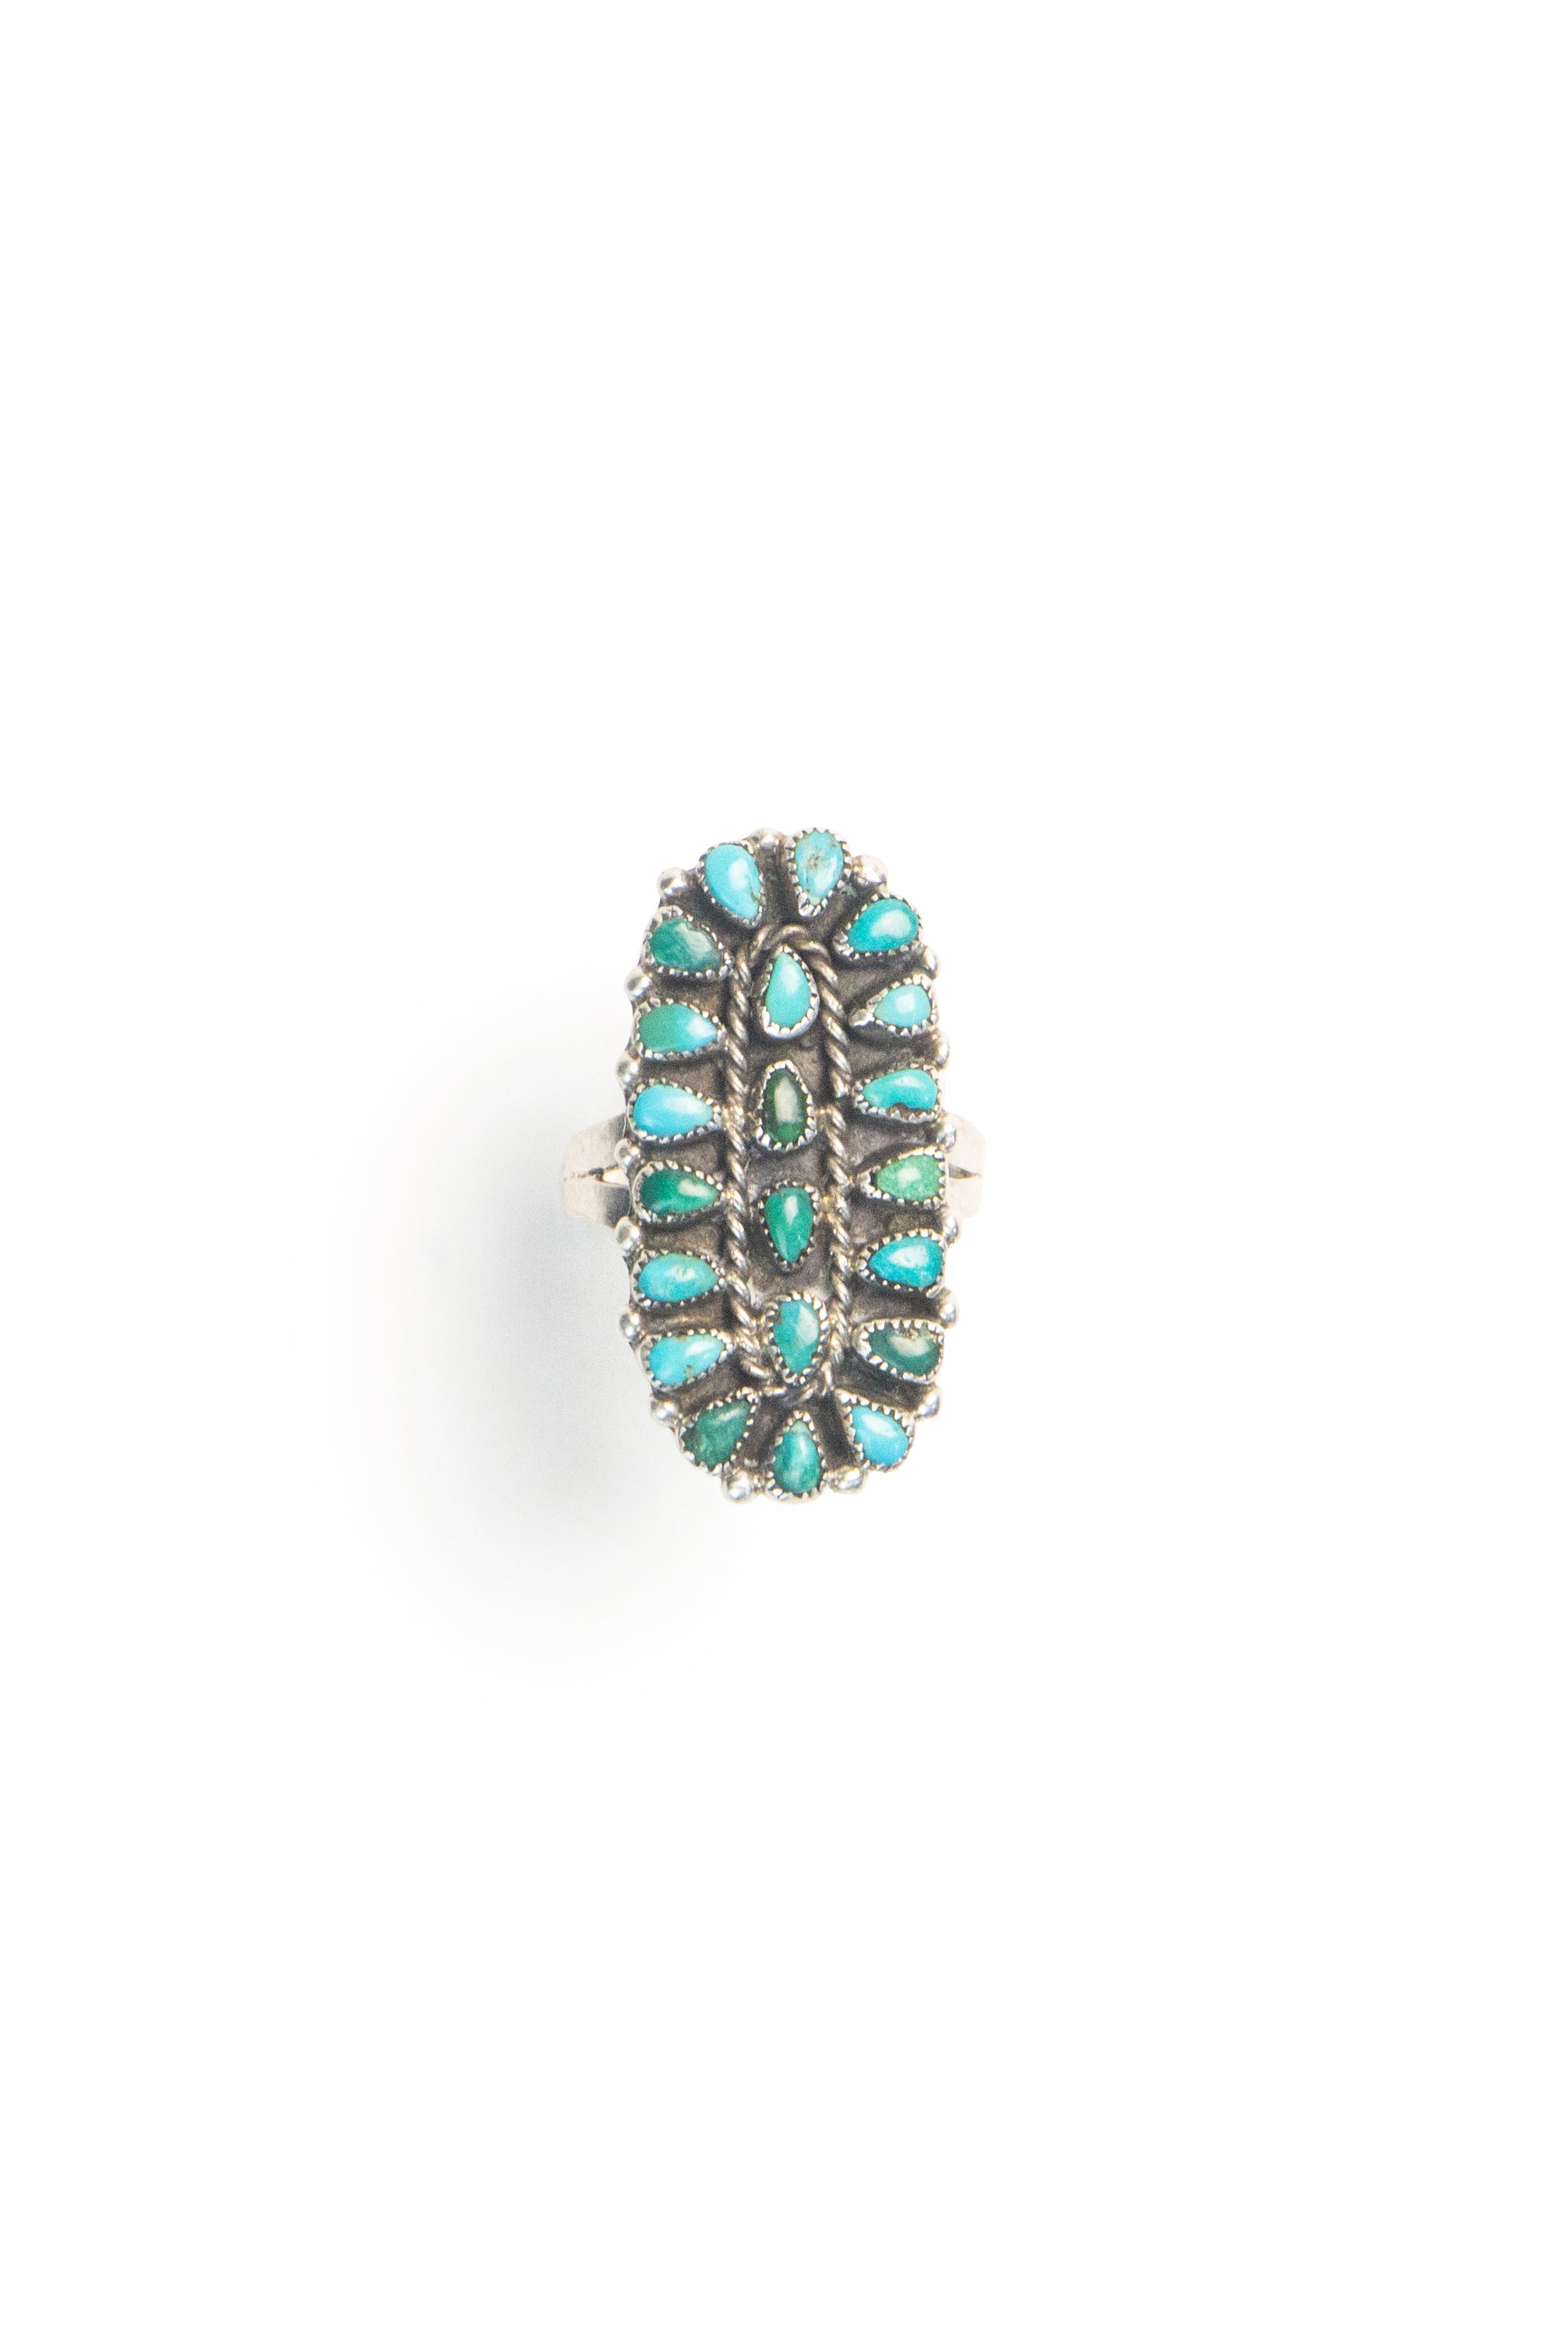 Ring, Cluster, Turquoise, Vintage, 545